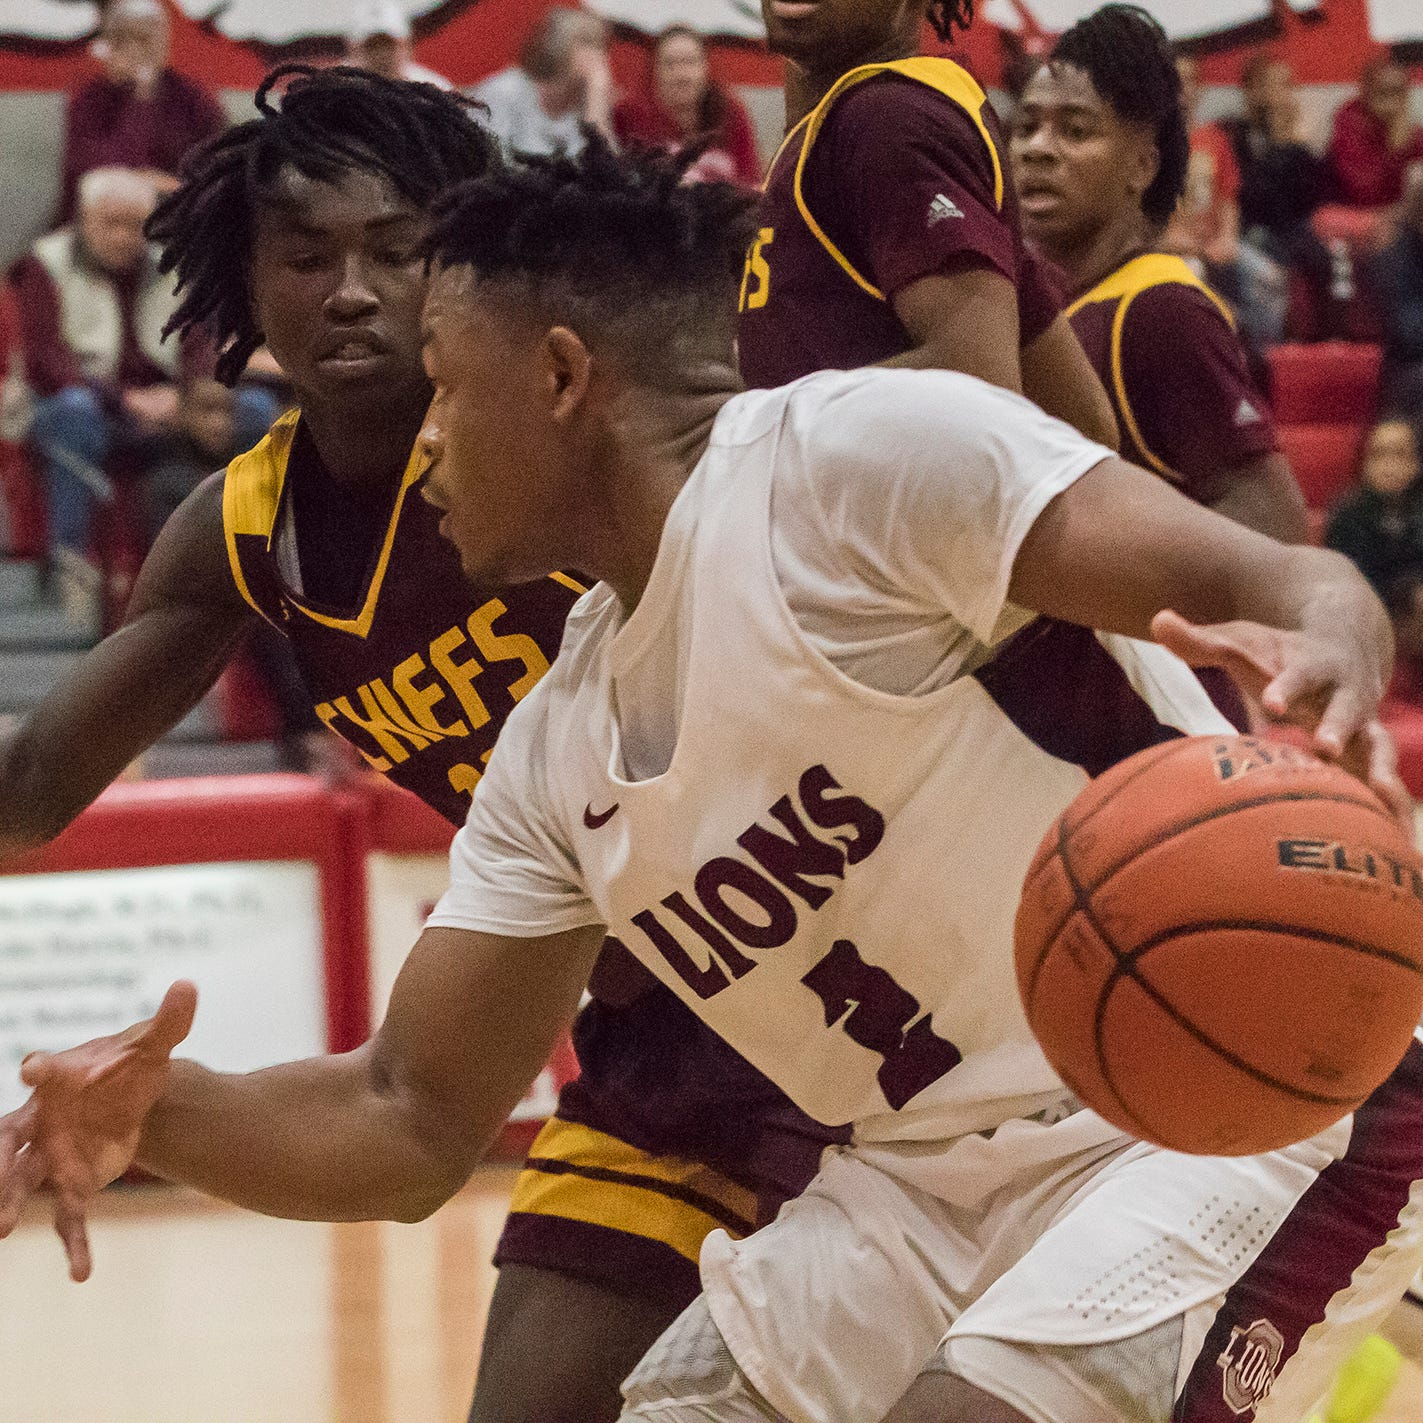 Ouachita's Paul King (2) makes a drive to the net while Natchitoches Central's Nathan Curtis (10) attempts to defend during the game at Ouachita High School in Monroe, La. on Jan 18.